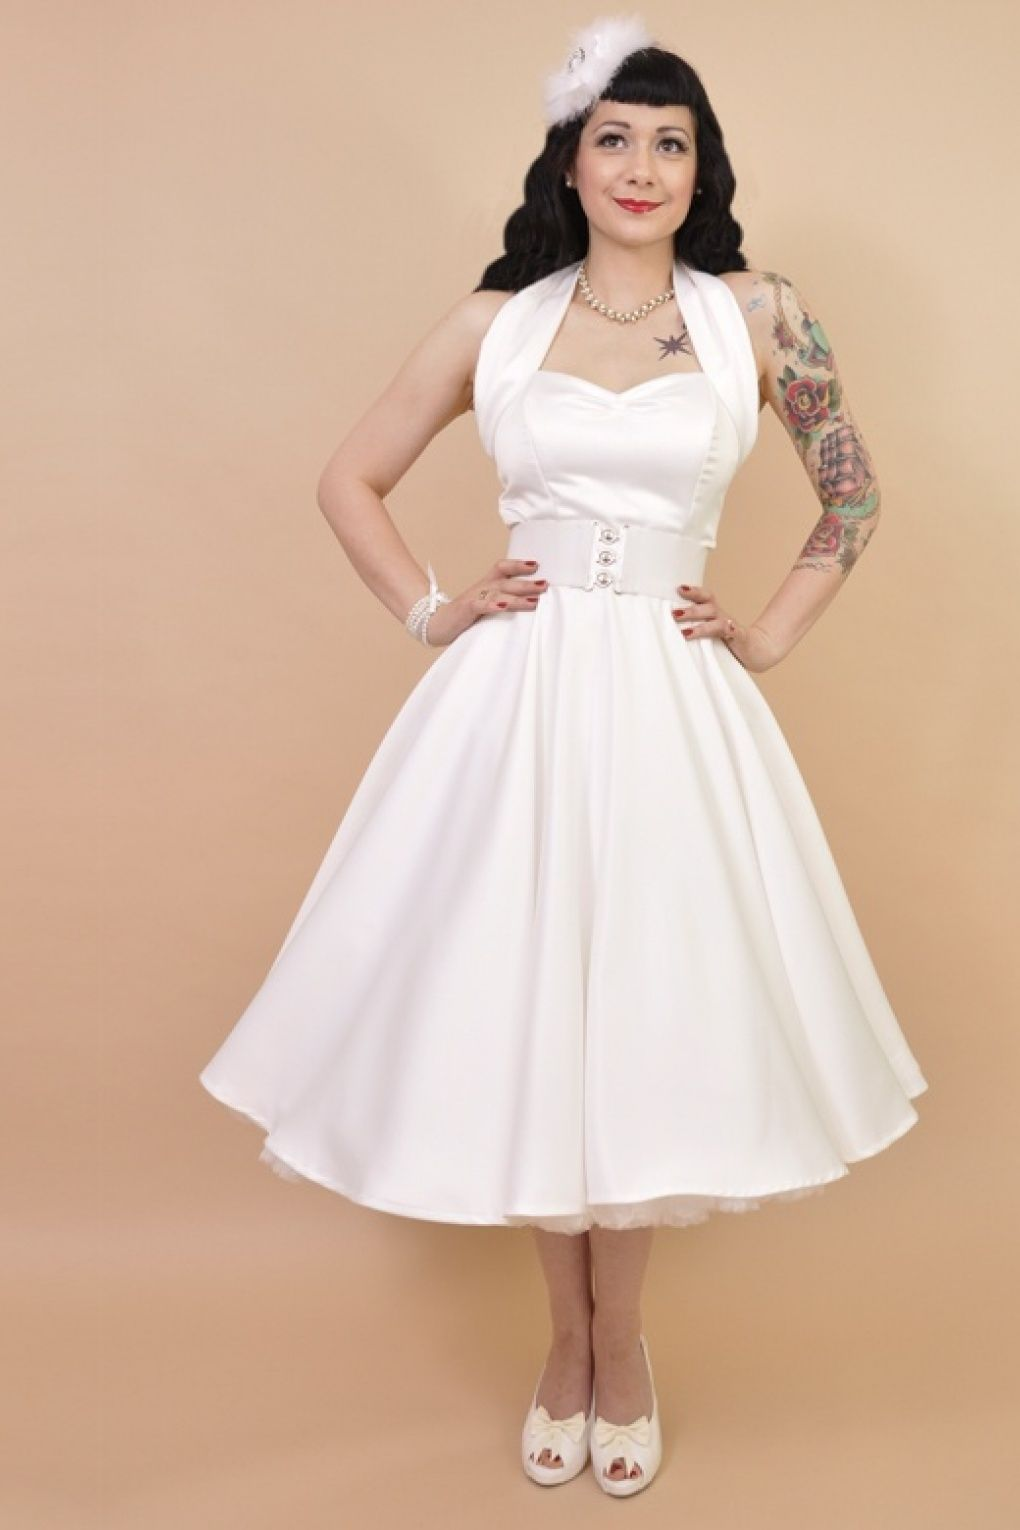 Vivien of Holloway - 50s Retro halter White Satin swing dress bridesdress